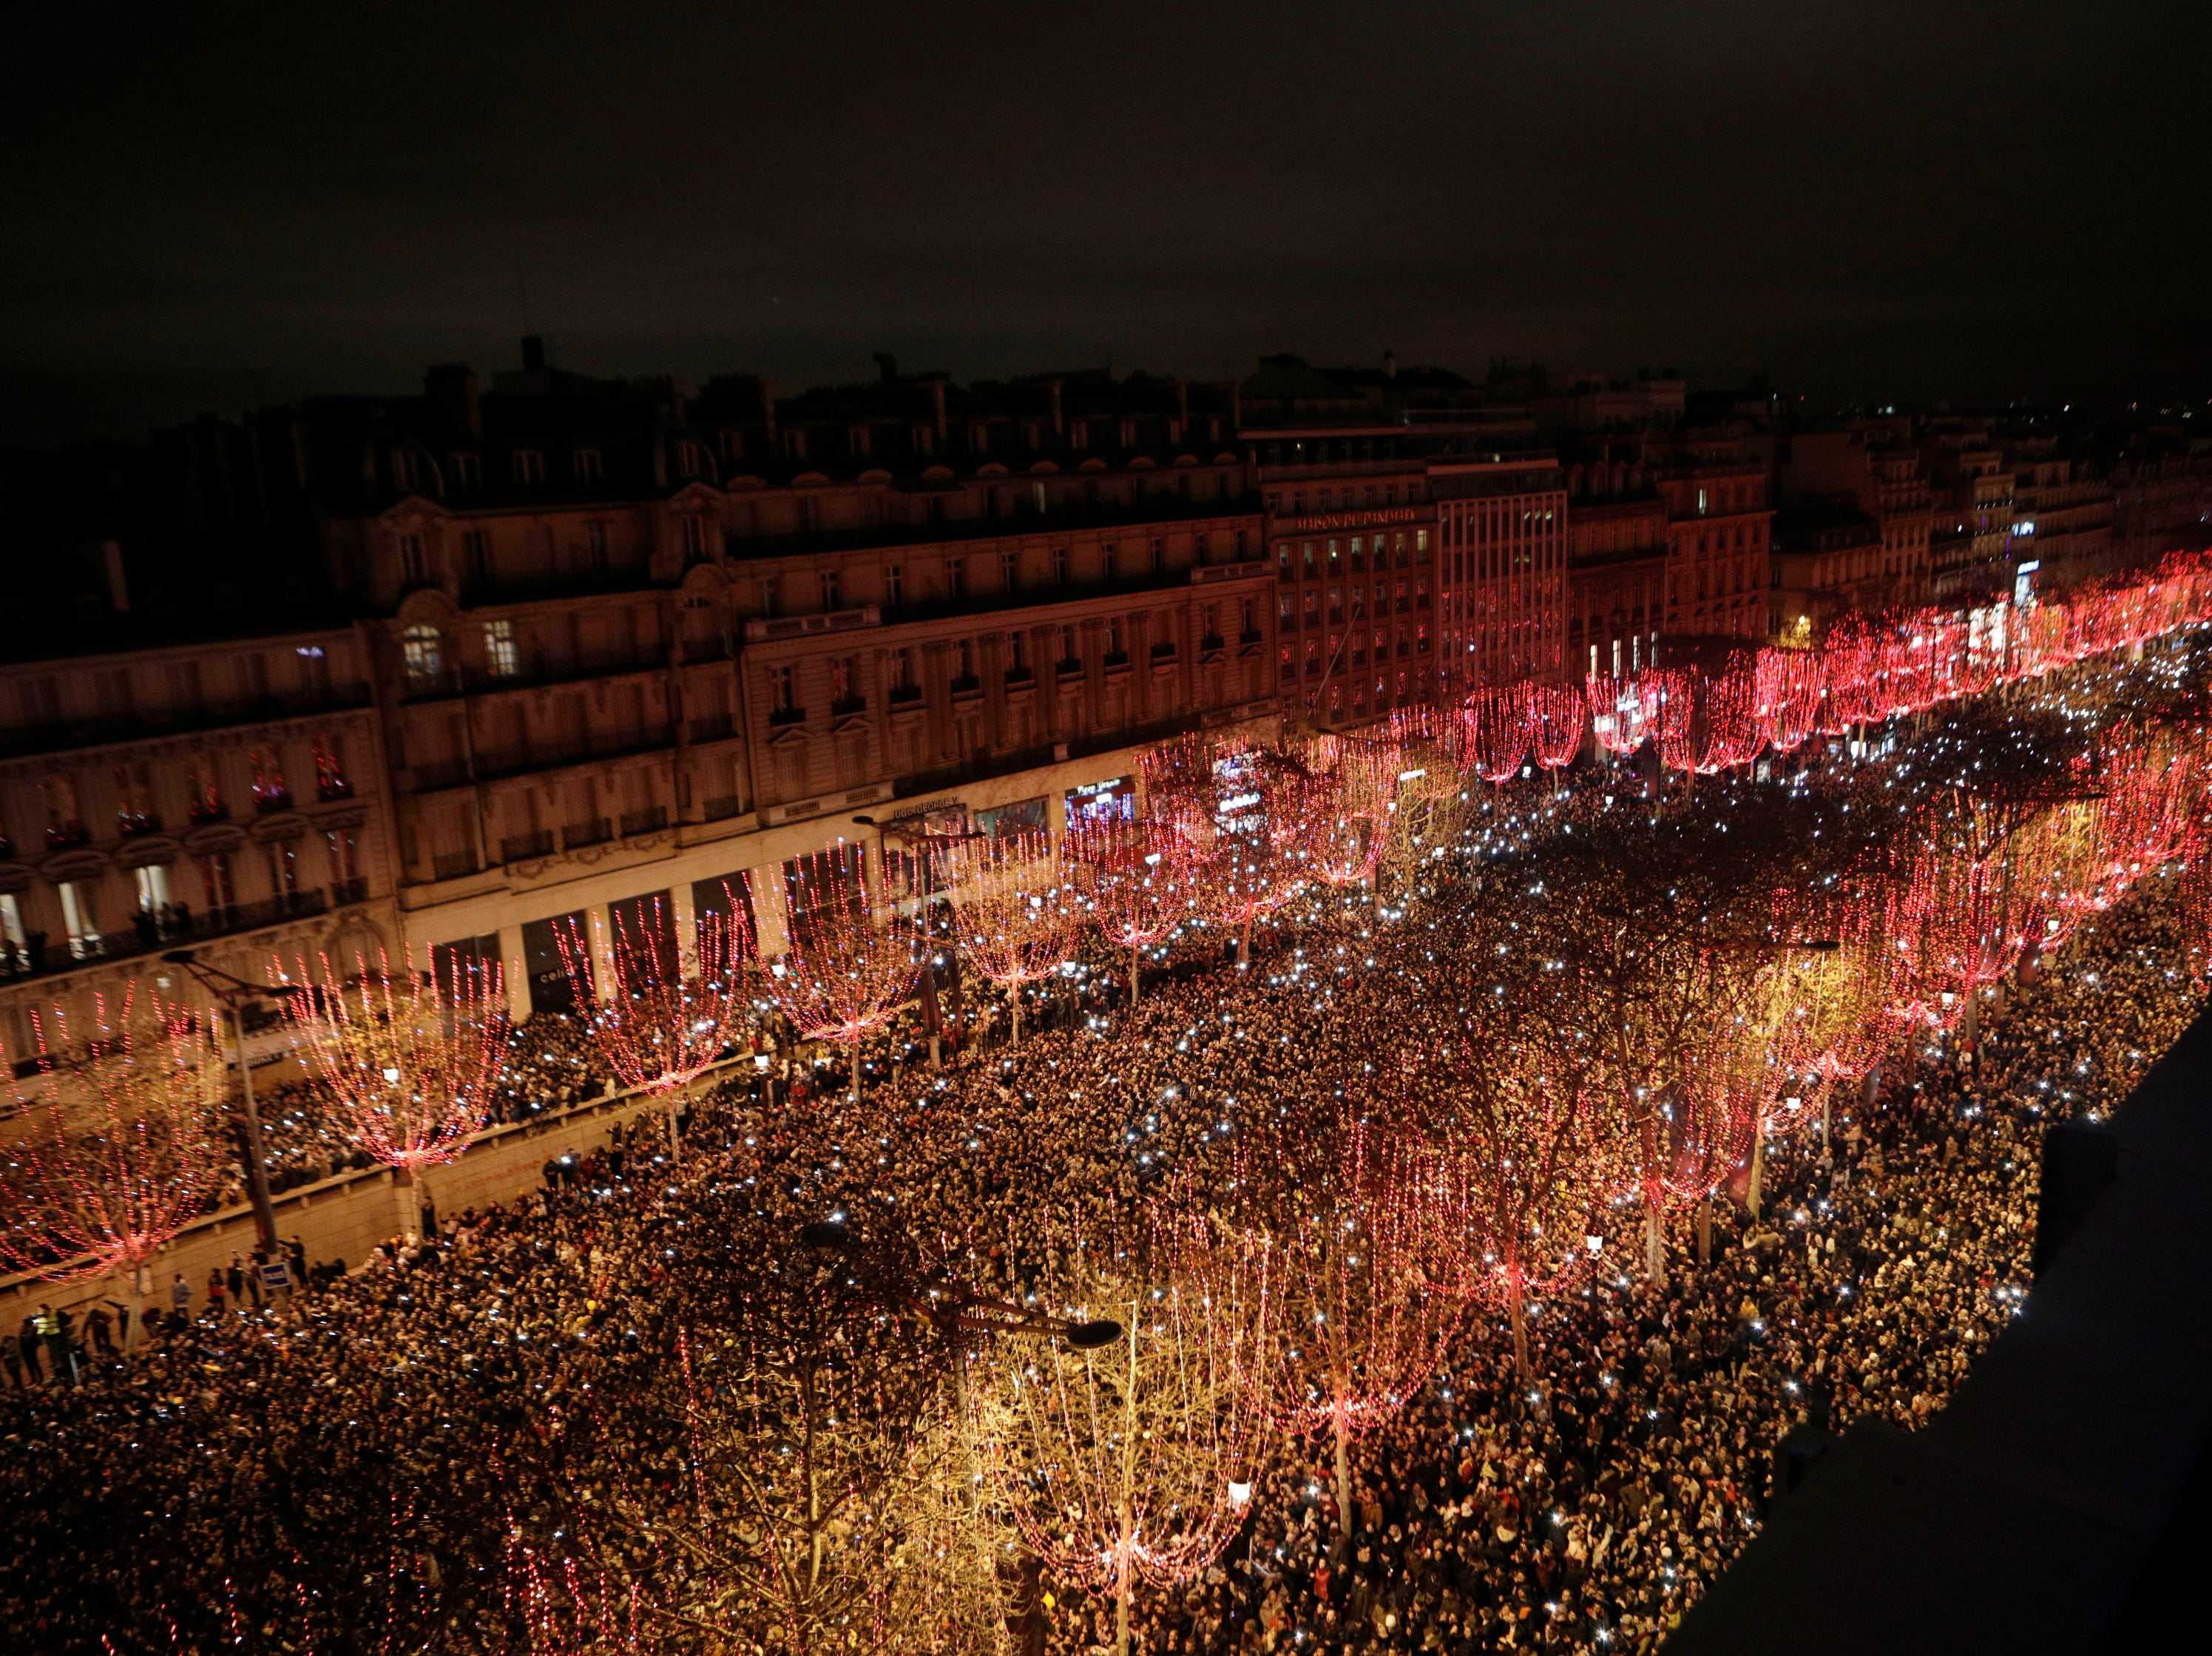 Spectators gather to attend the New Year's Day celebrations on the Champs Elysees, in Paris, Tuesday, Jan. 1, 2019.